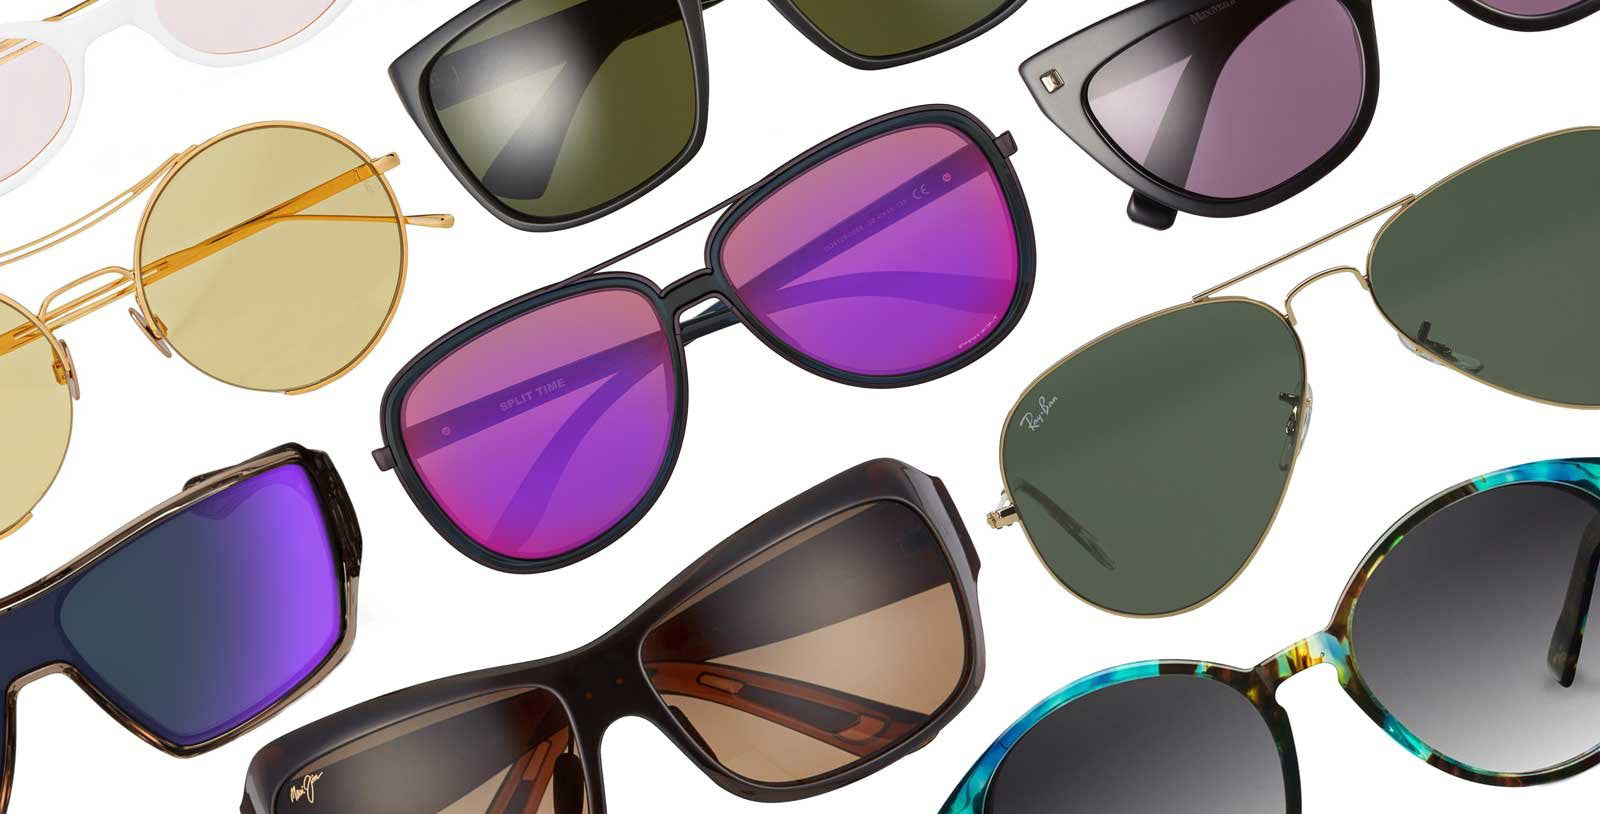 TIPS FOR CHOOSING THE RIGHT SUNGLASSES ONLINE